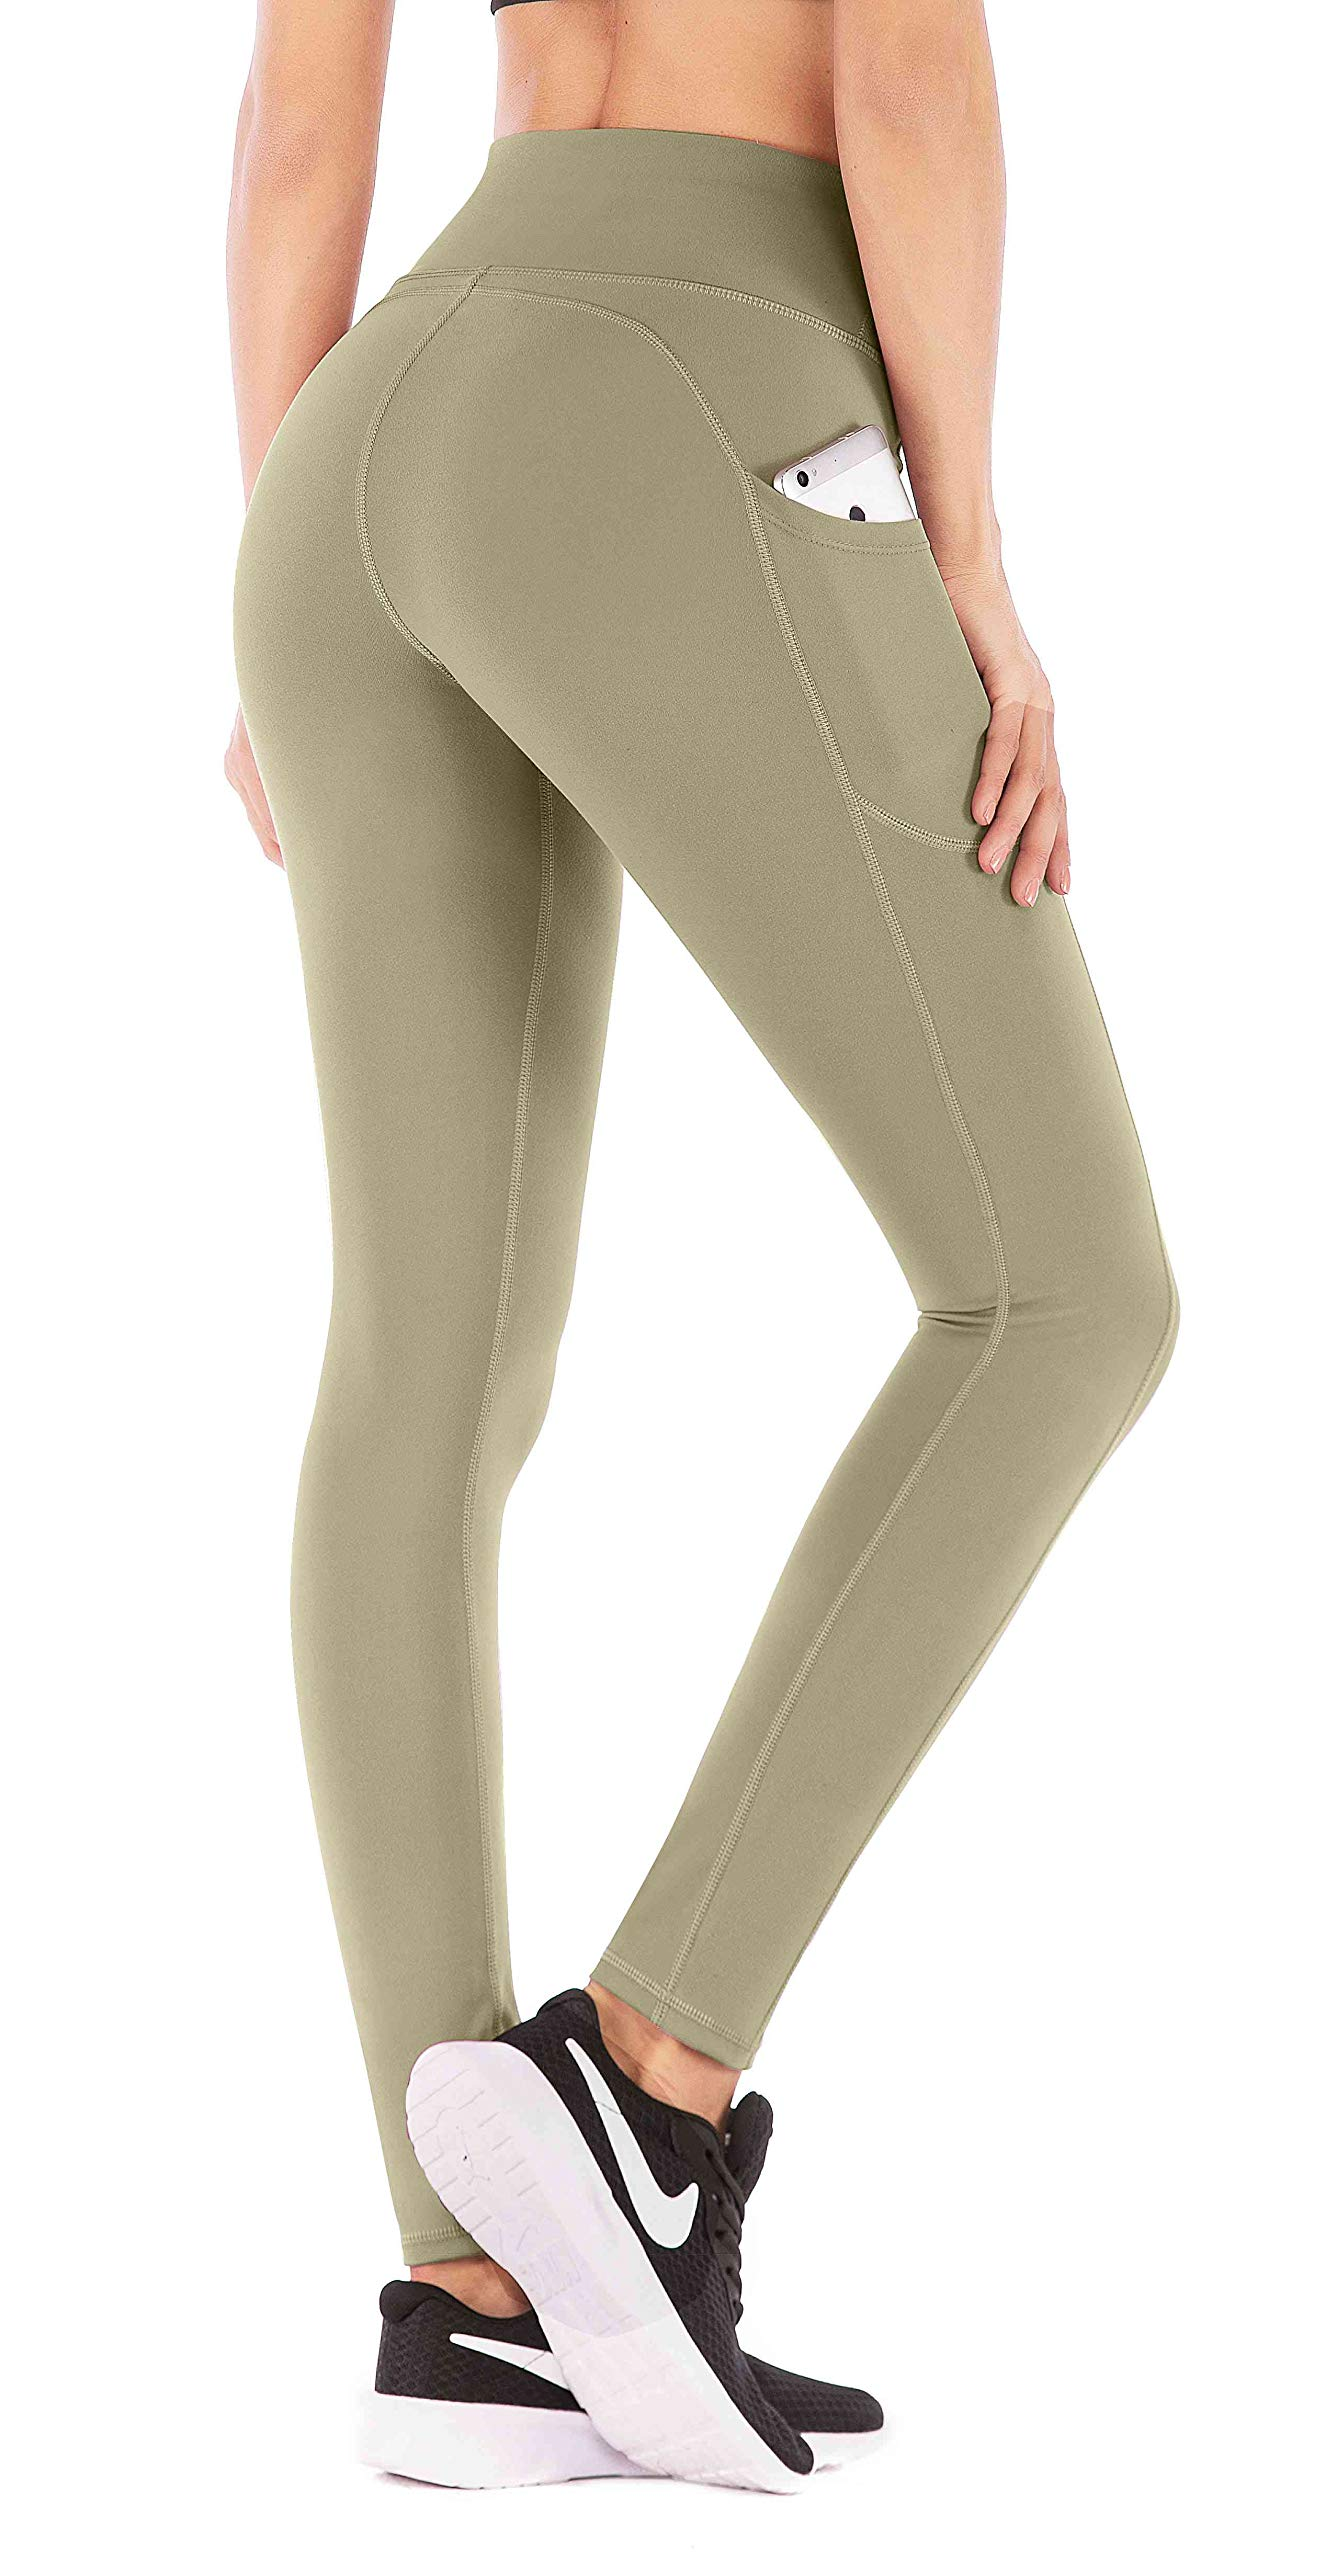 IUGA High Waist Yoga Pants with Pockets, Tummy Control, Workout Pants for Women 4 Way Stretch Yoga Leggings with Pockets (Olive, X-Small) by IUGA